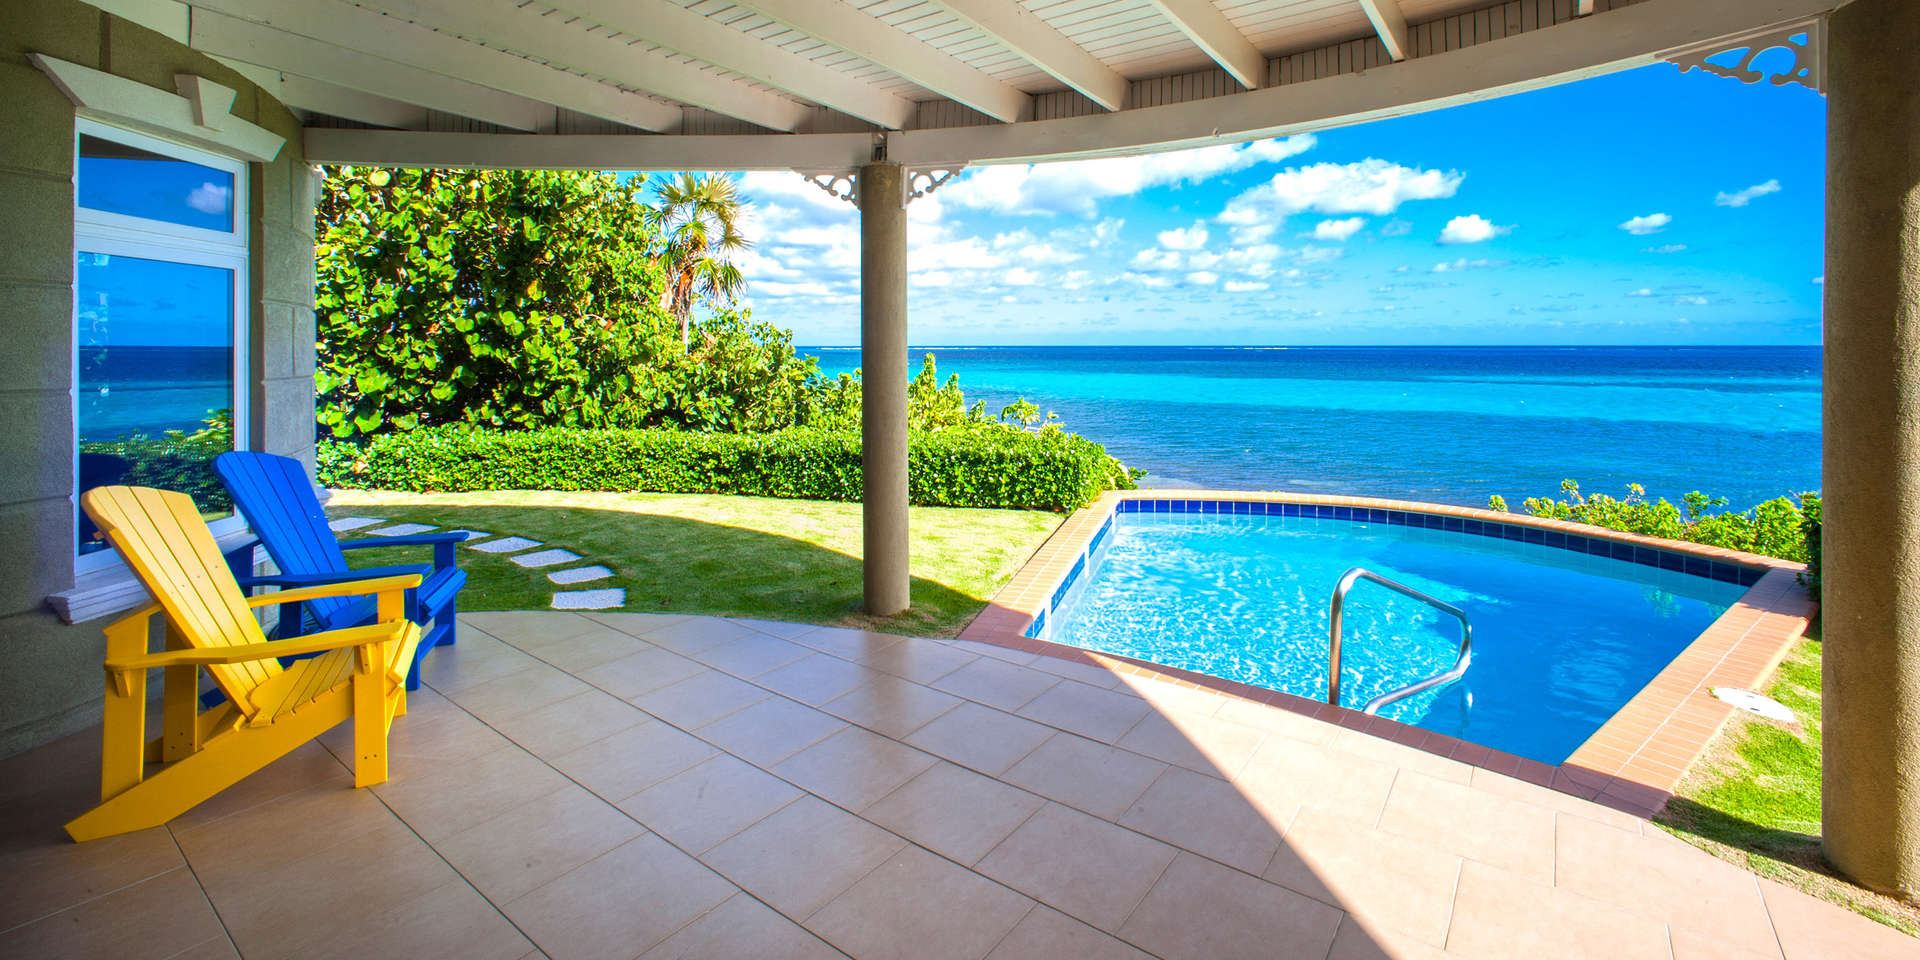 Luxury villa rentals caribbean - Cayman islands - Grand cayman - Gun bay - Castle Guesthouse - Image 1/8